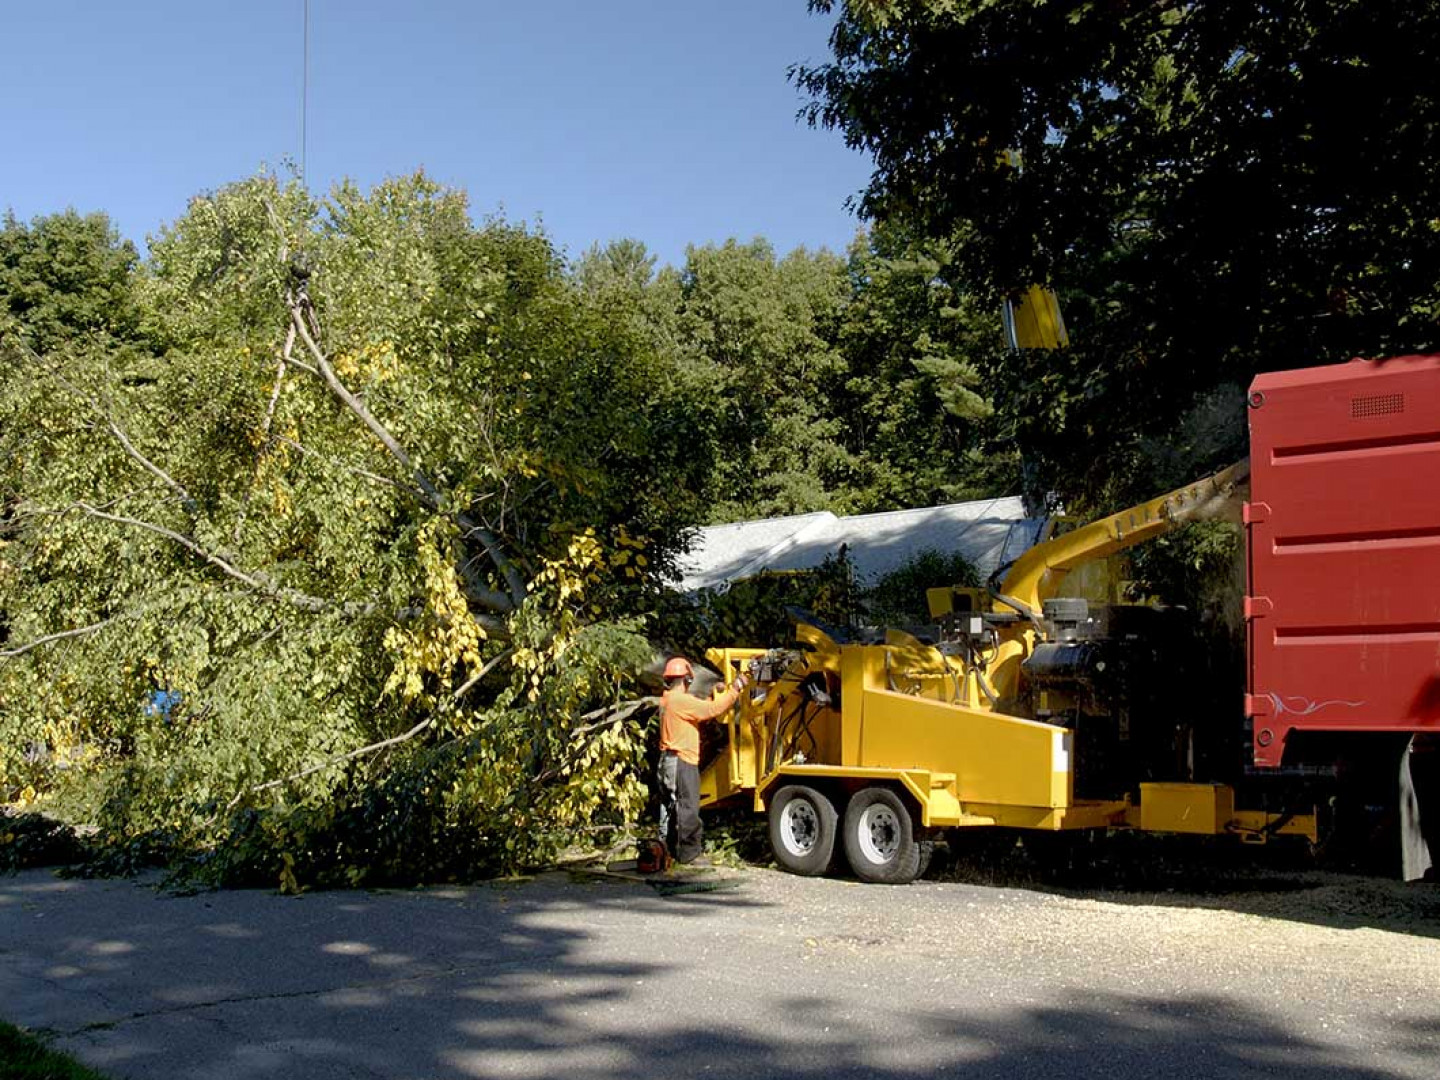 Get Rid of Dangerous or Unwanted Trees Safely